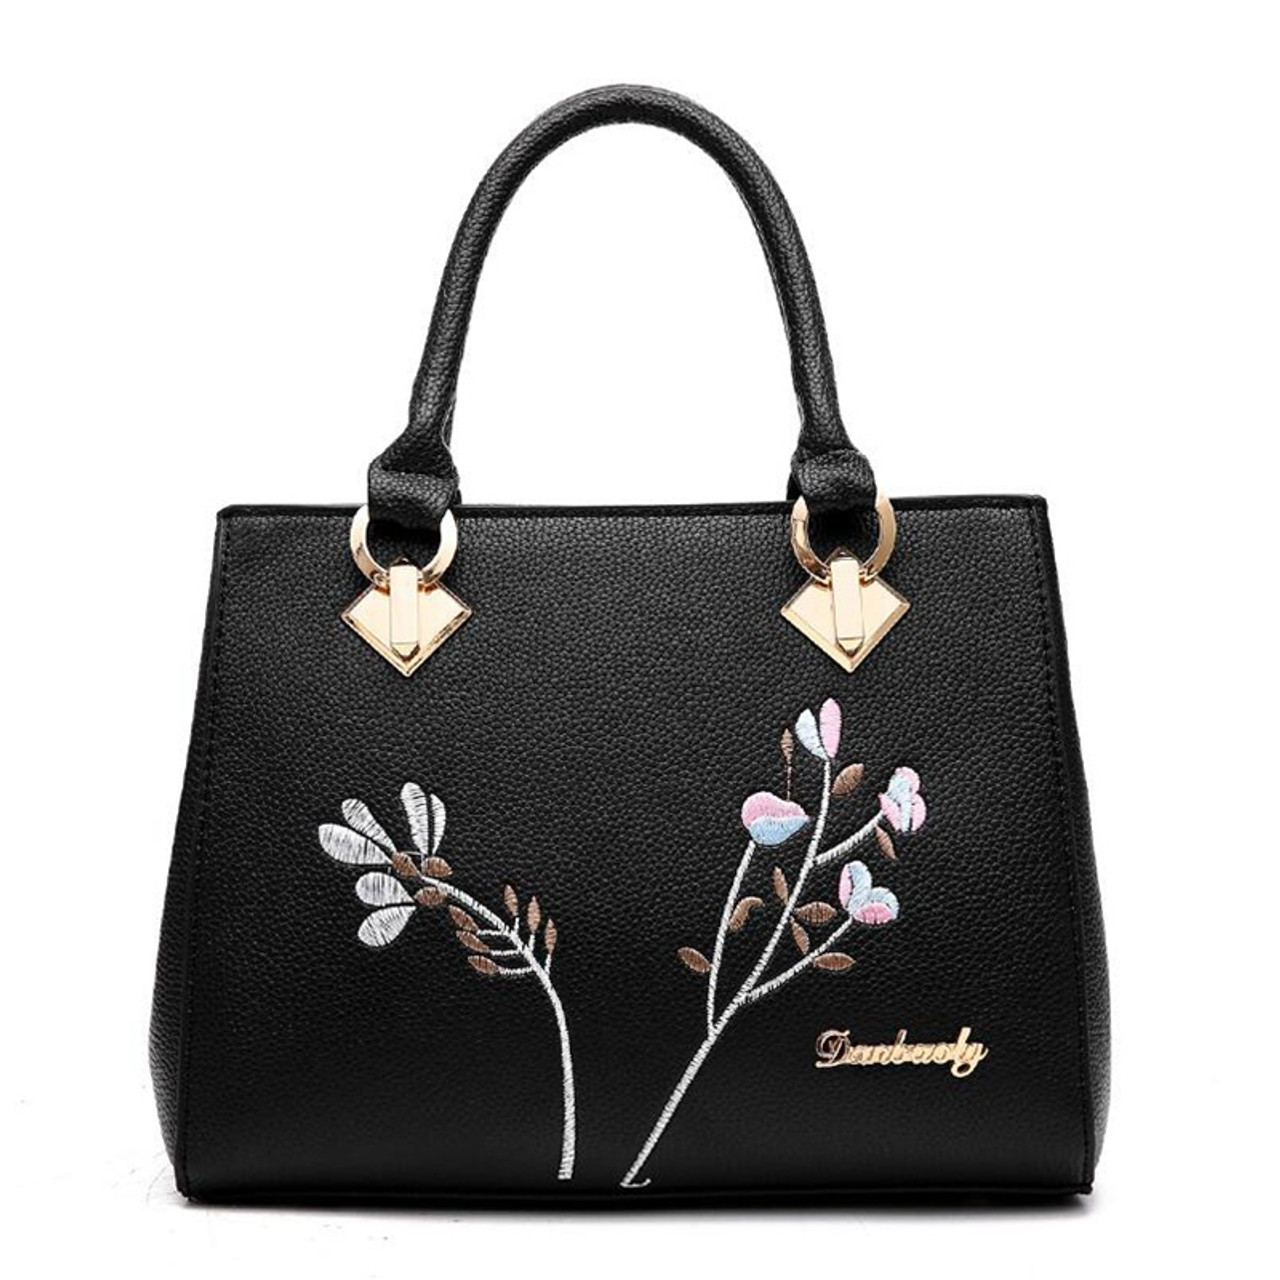 1fe248b9c6d ... 2018 Messenger Bags Women handbag flower women shoulder bags women pu  leather tote bag ladies bags ...